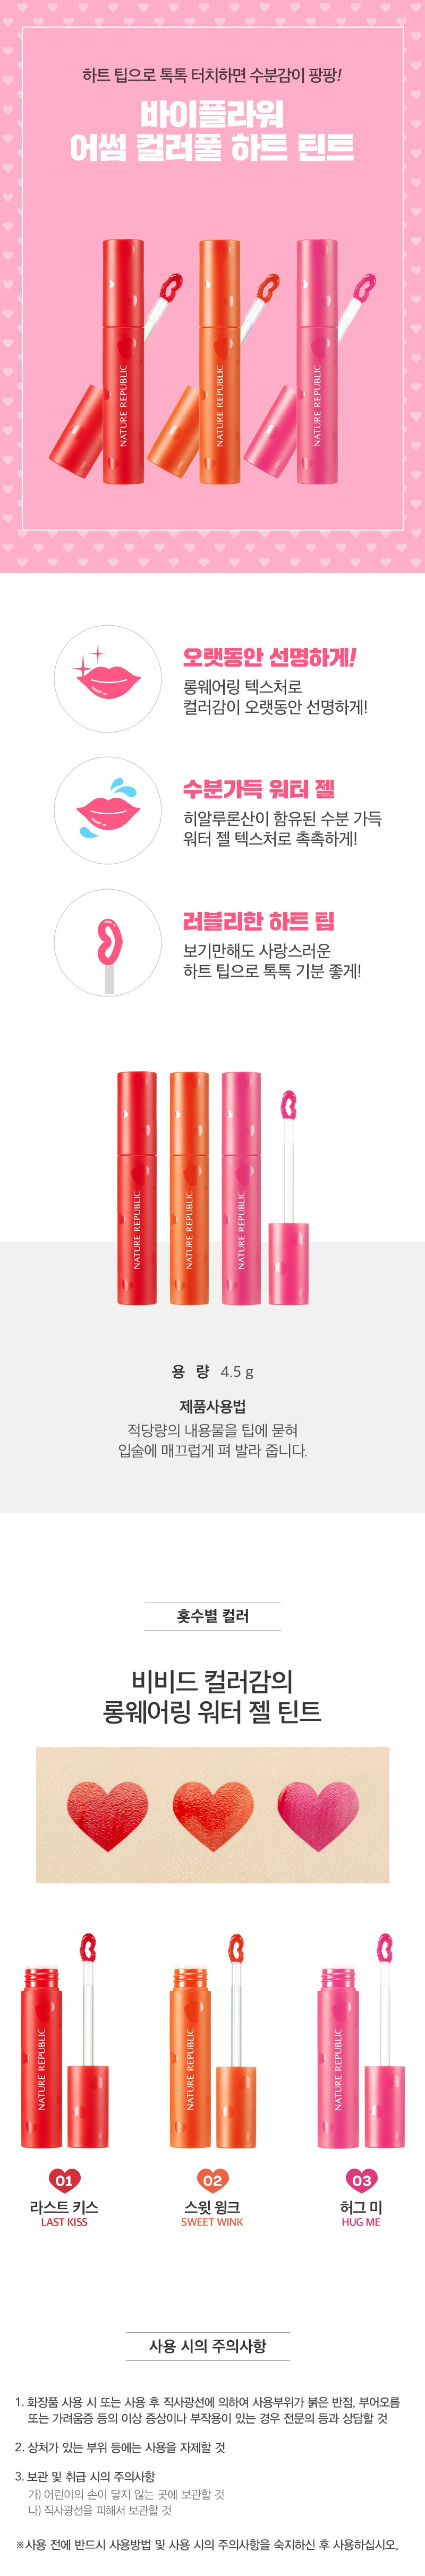 Nature Republic By Flower Awesome Colorful Heart Tint korean cosmetic makeup product online shop malaysia china india1